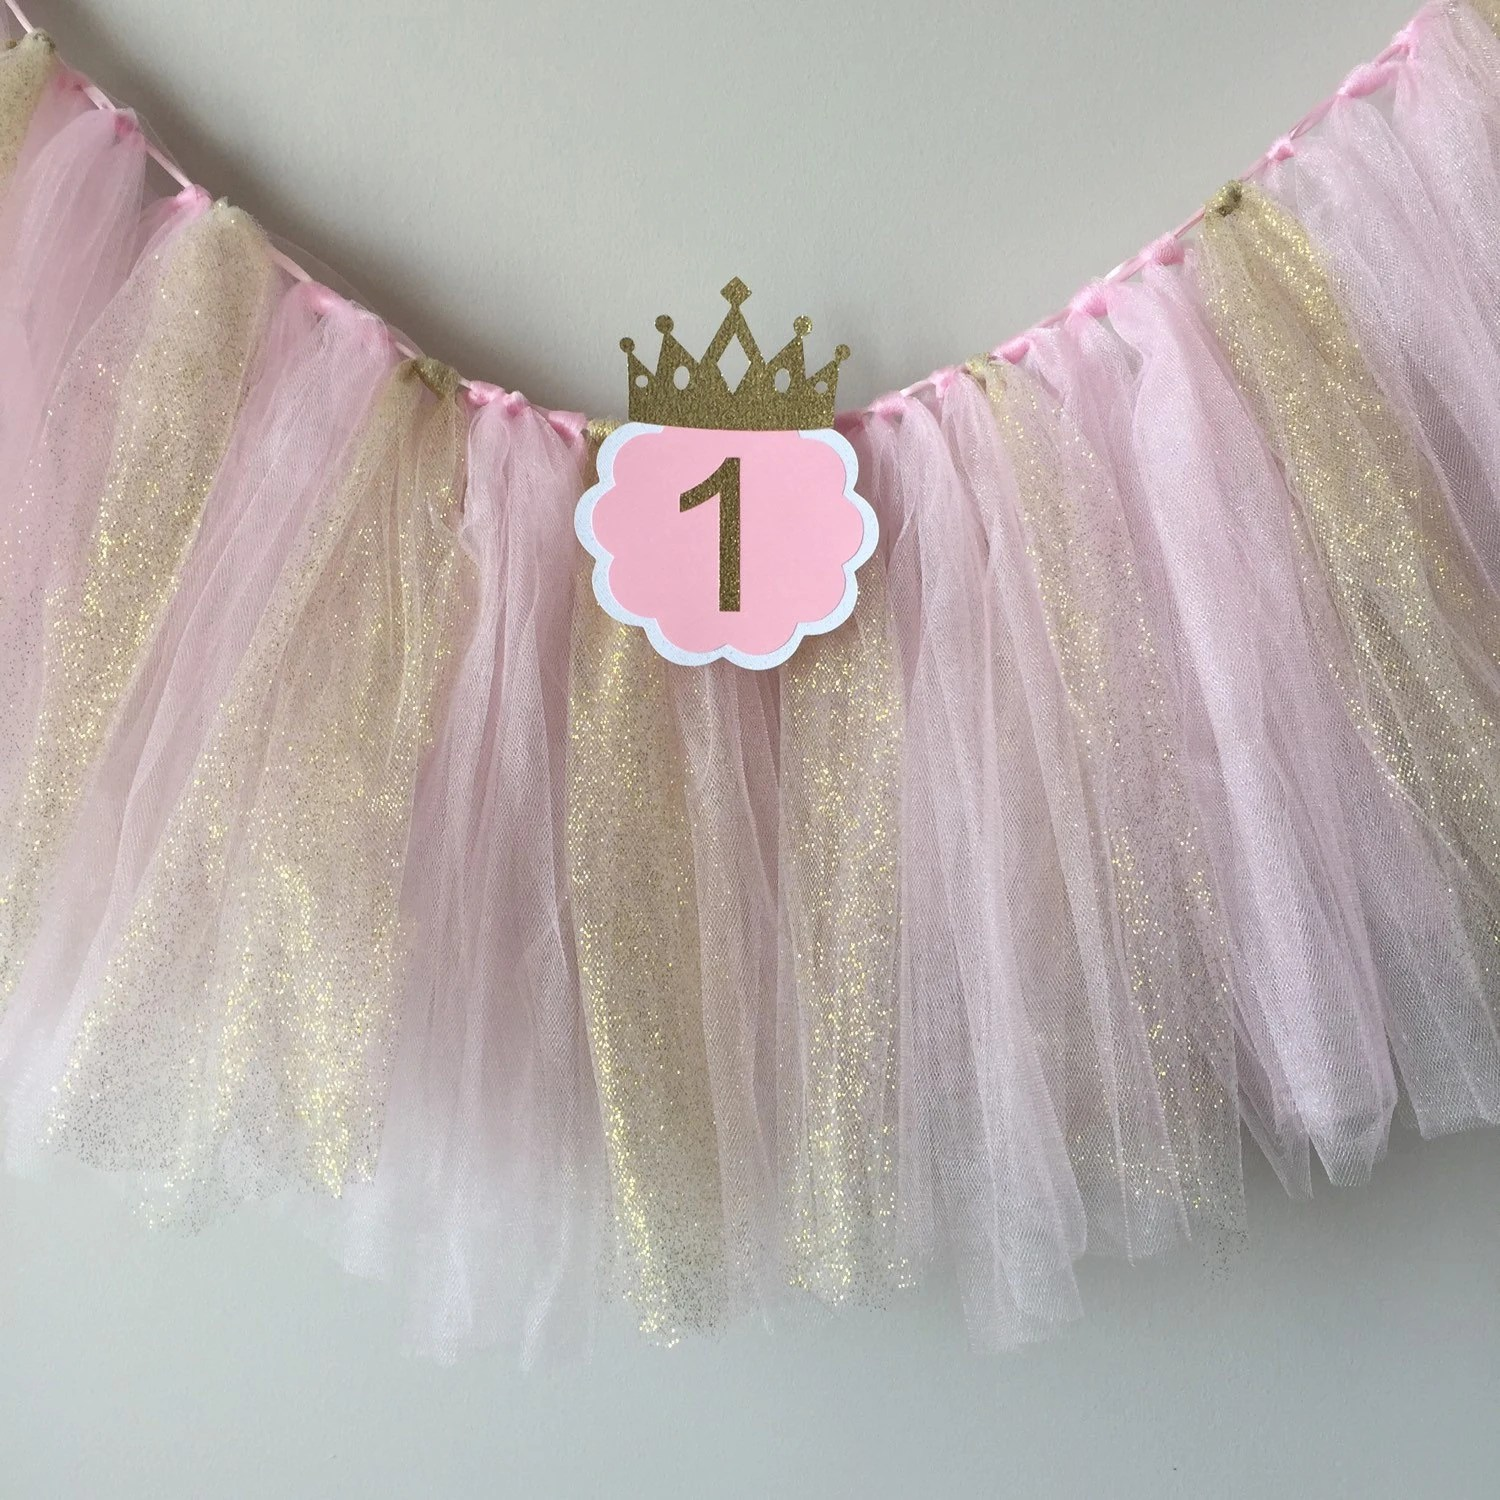 high chair tutu design bamboo pink and gold birthday party